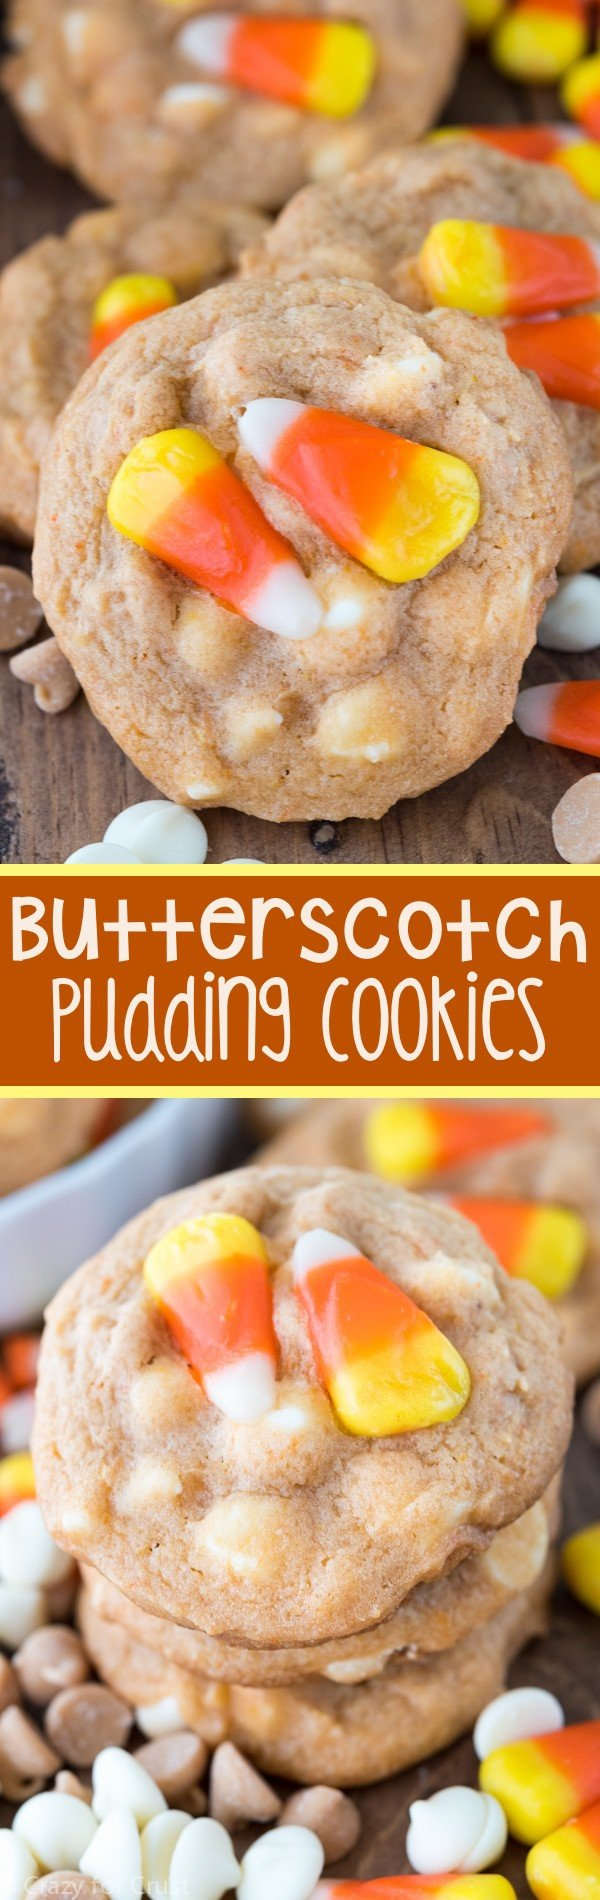 Easy Butterscotch Pudding Cookies - this easy cookie recipe starts is full of butterscotch pudding mix! Just a few ingredients to the perfect cookie that stays soft for days!